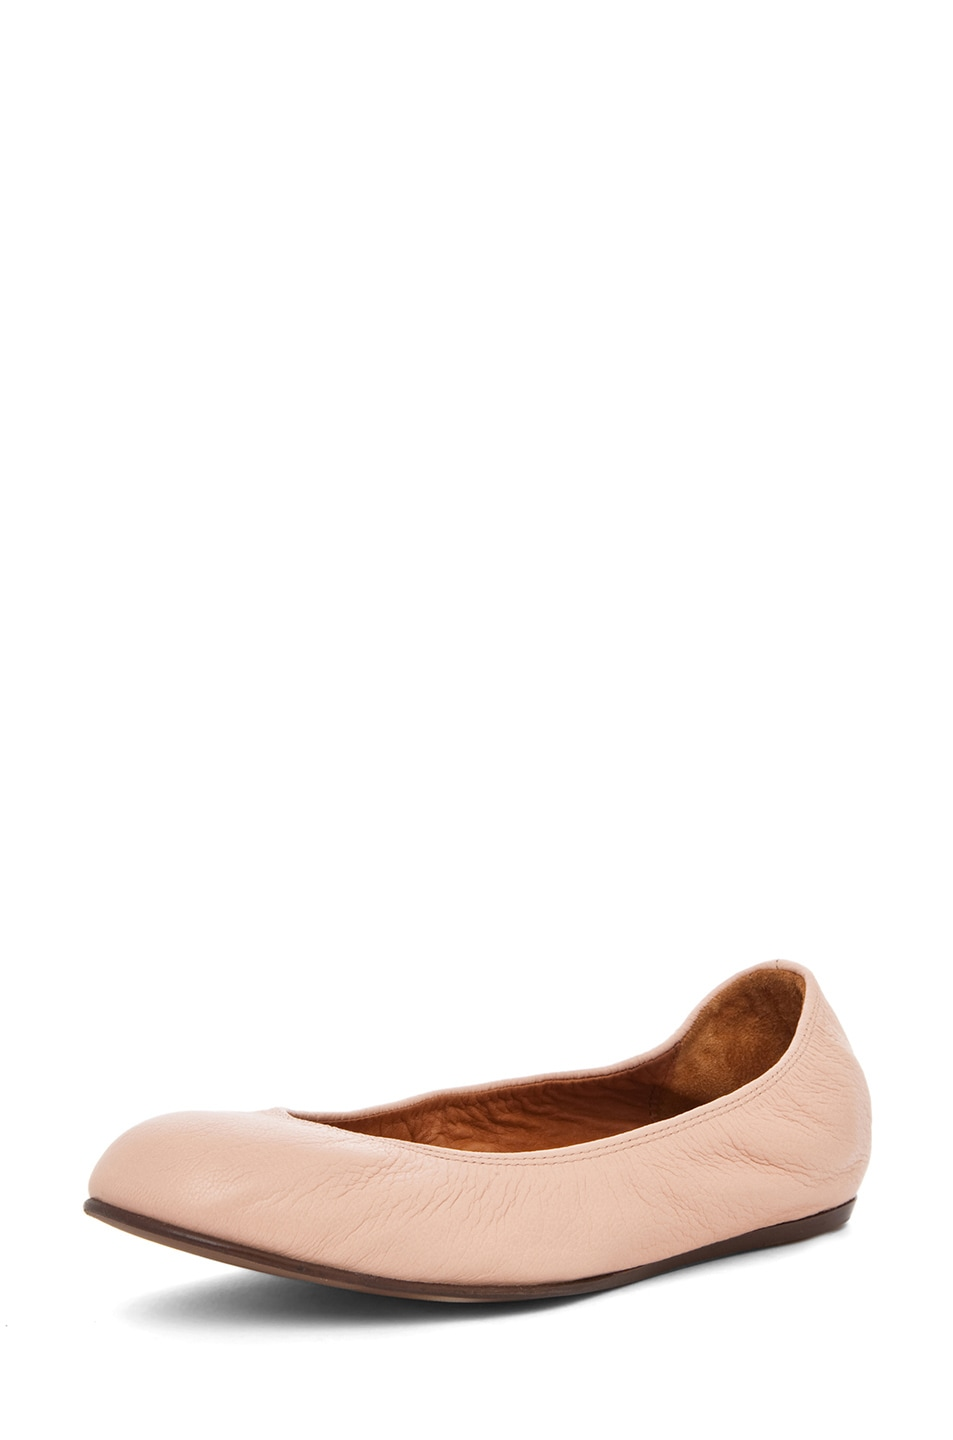 Image 2 of Lanvin Classic Ballerina Flat in Light Pink